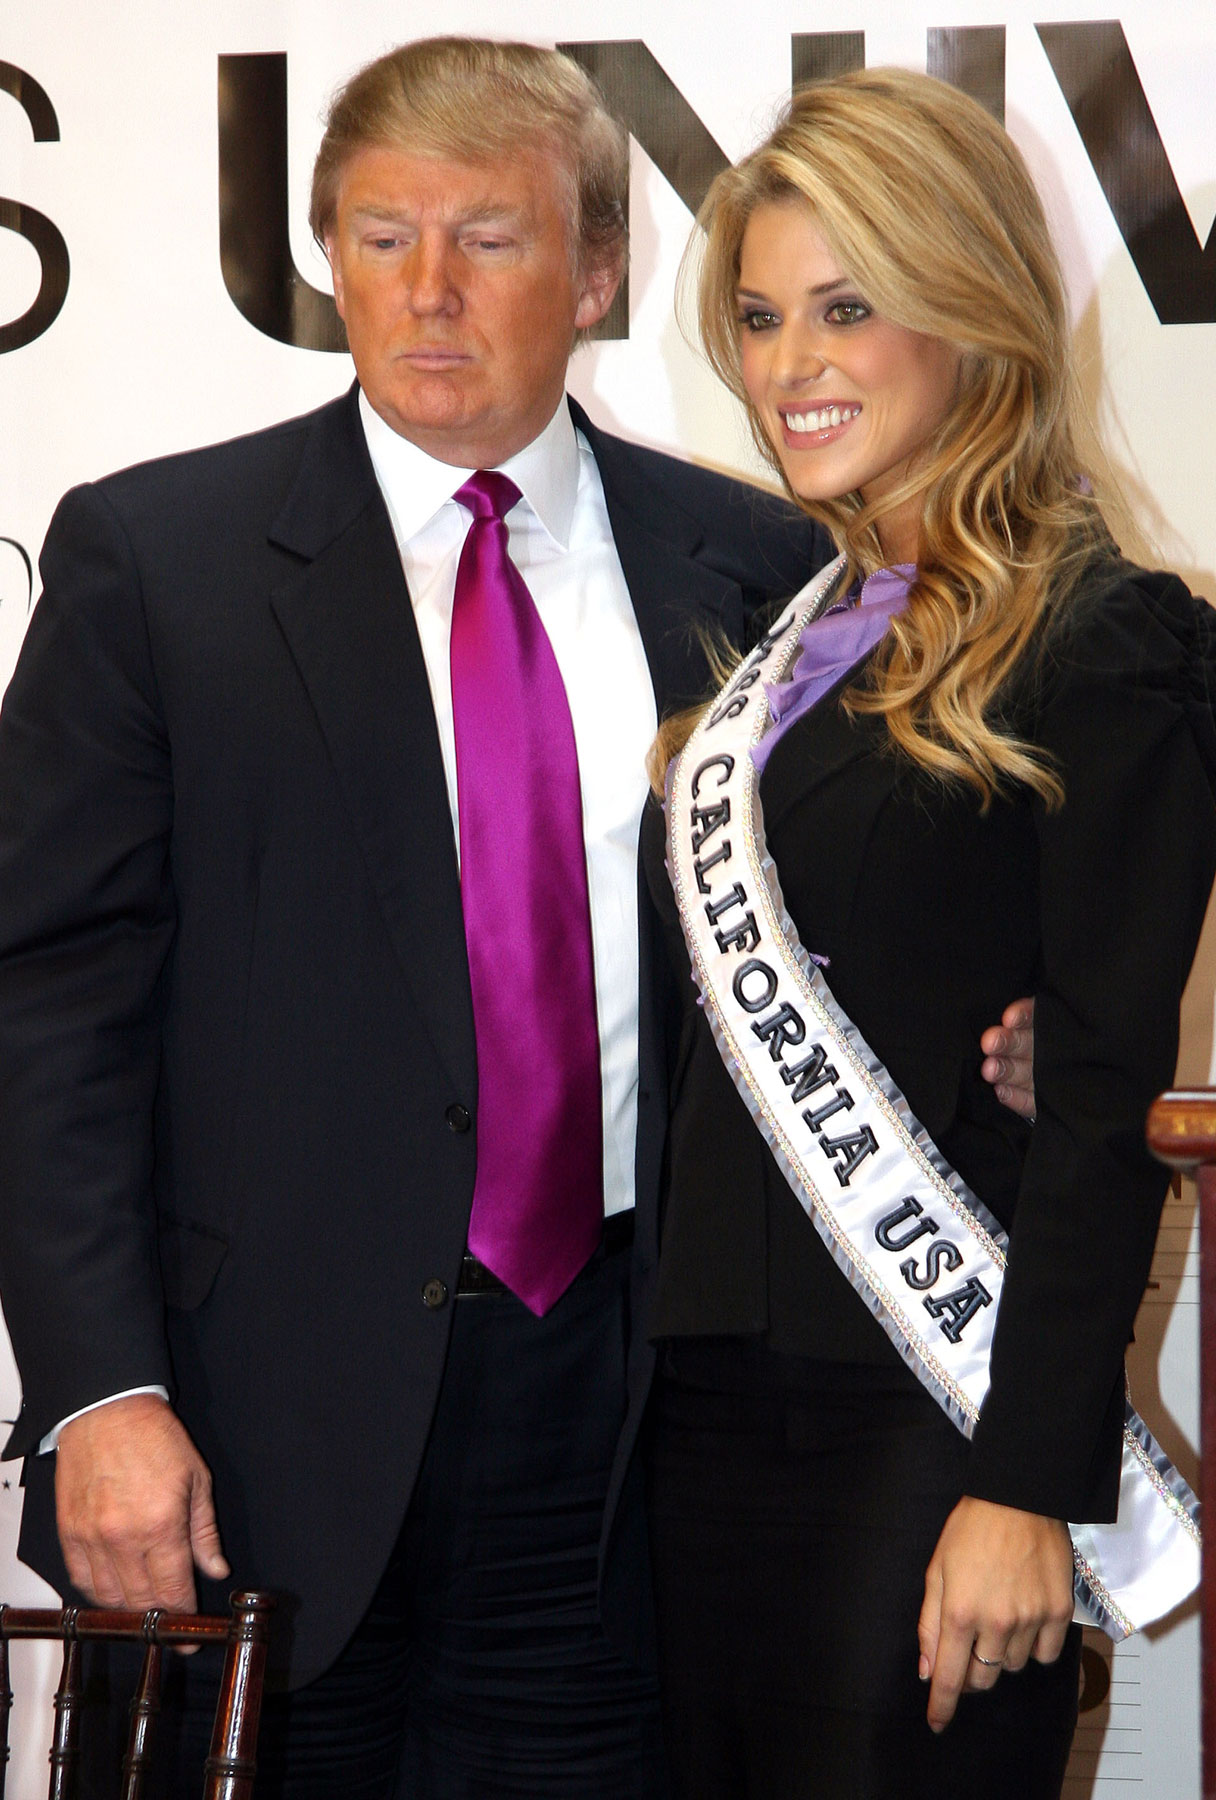 Donald Trump Gives Miss California a Pass